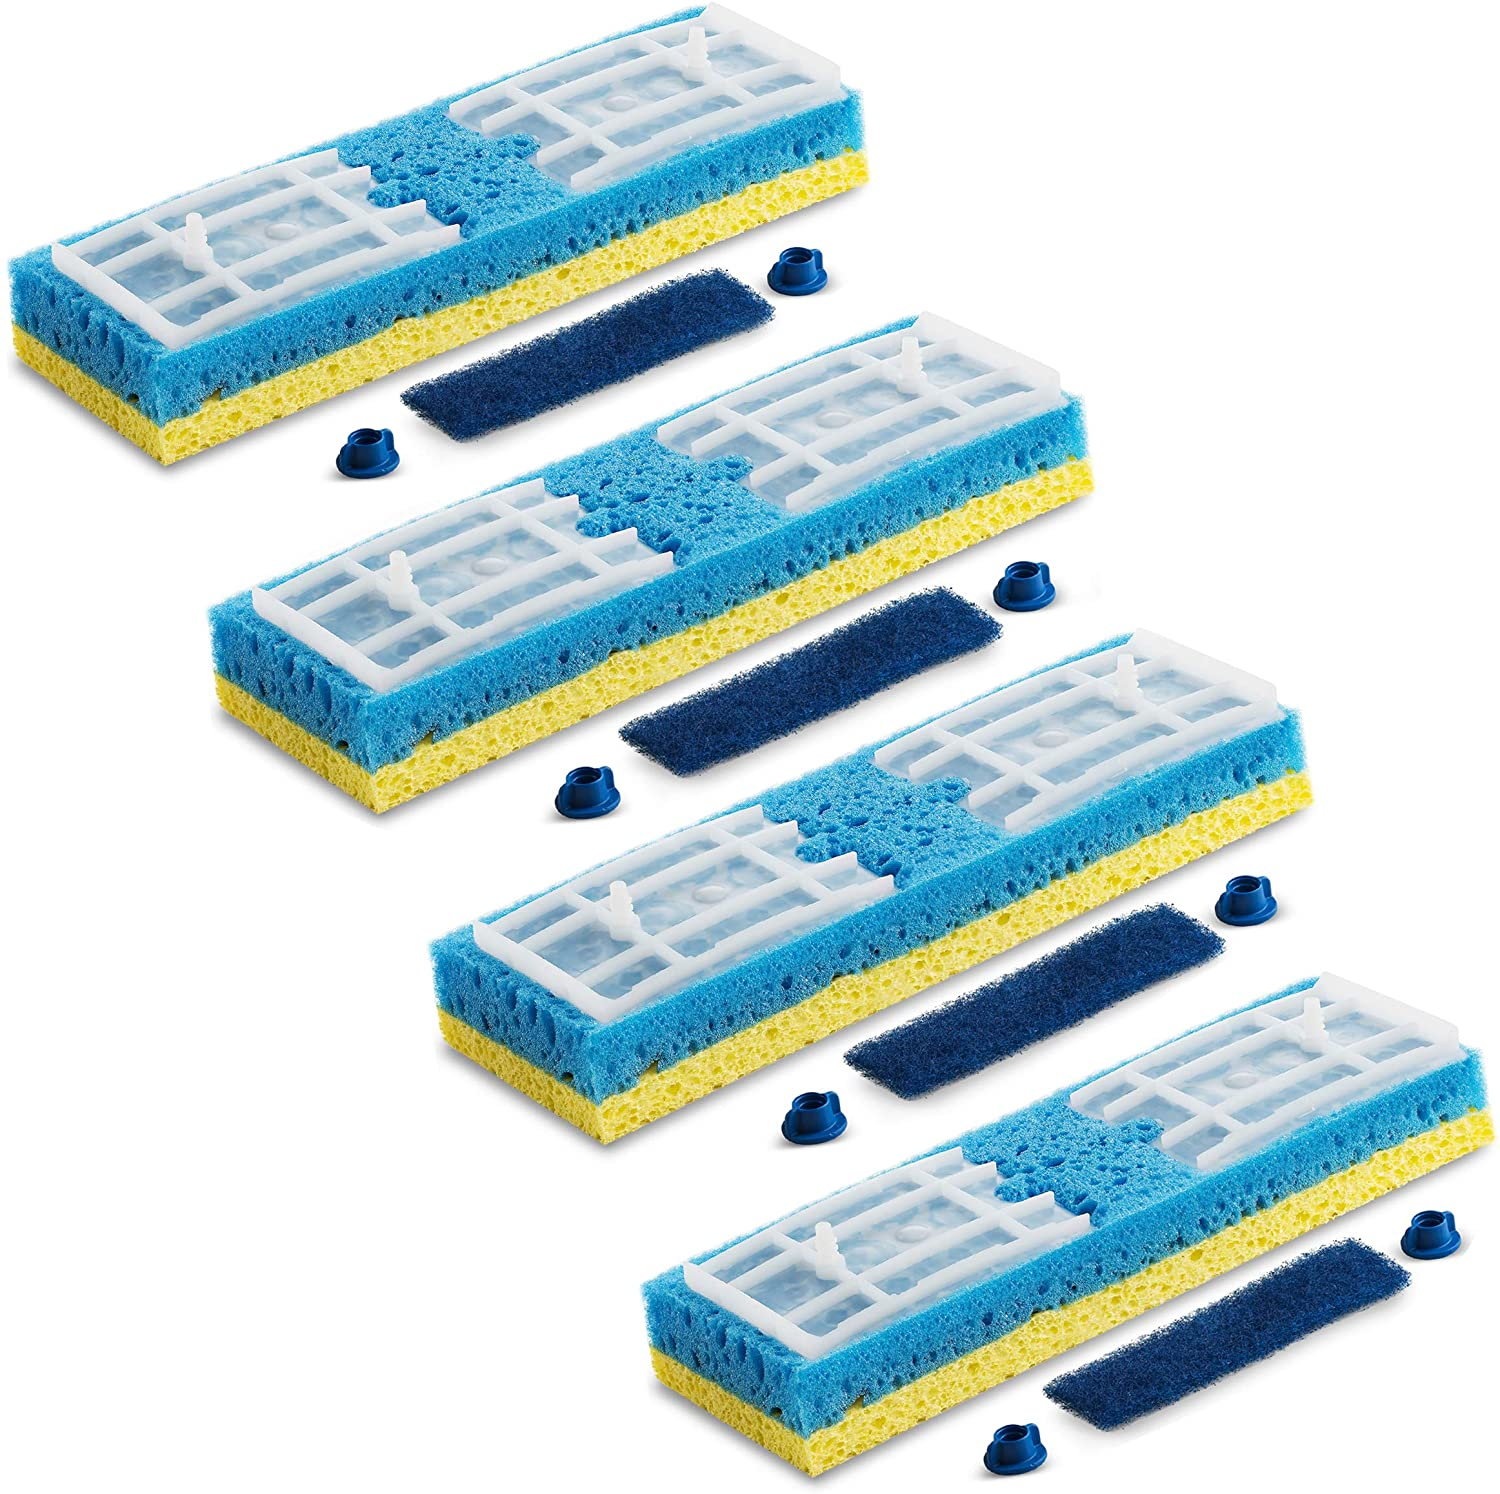 Quickie Sponge Mop Refill Type S [Set of 4] Sponge Mop Head Replacement - Quickie Mop Pads Refills 9X2.75 Inch - Quickie Mop Replacements #045 - Made in USA - Bundled With SEWANTA Eraser Cleaning Pad